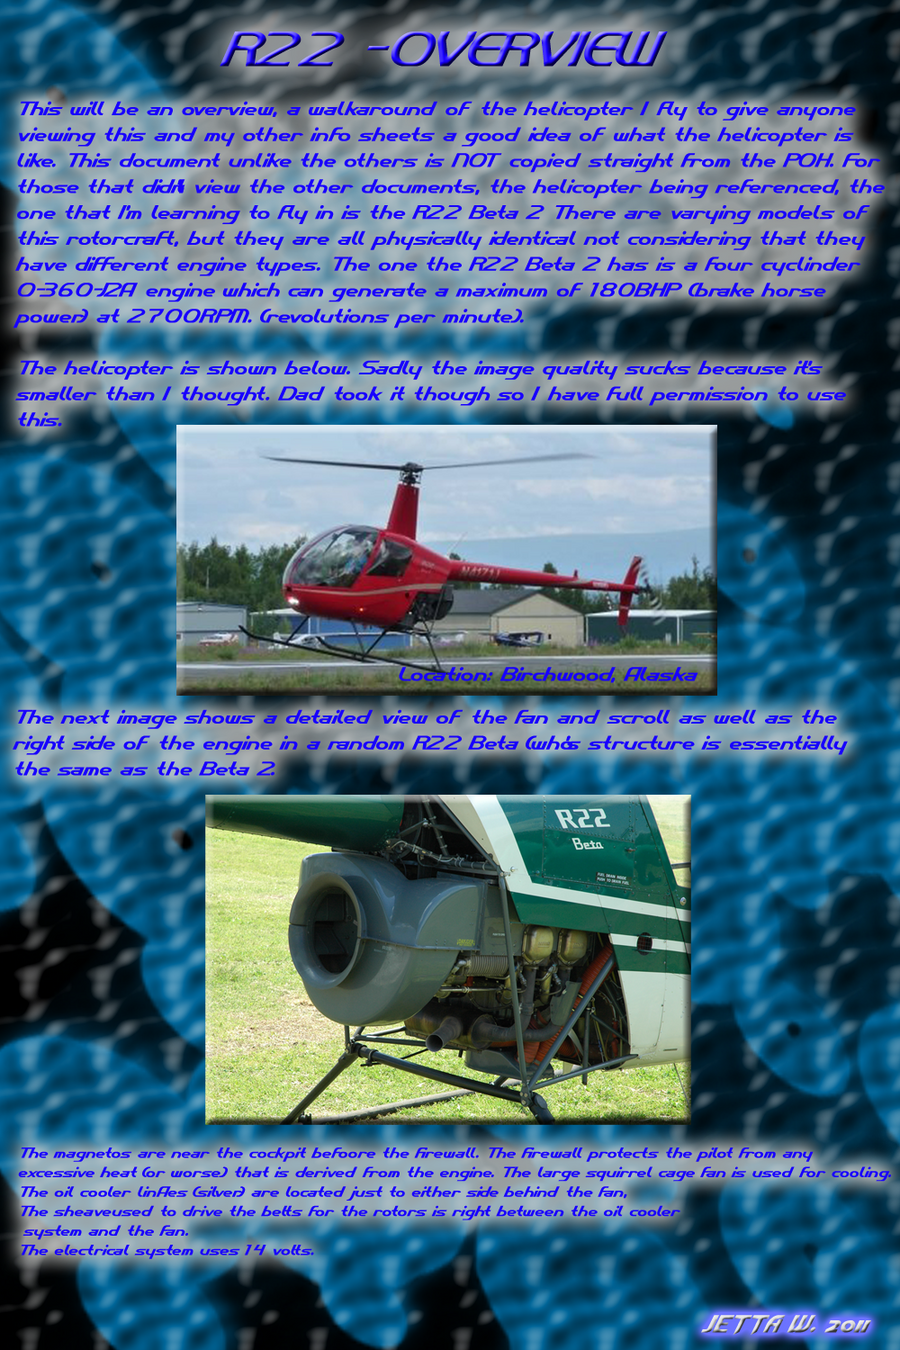 R22 Overview by Jetta-Windstar